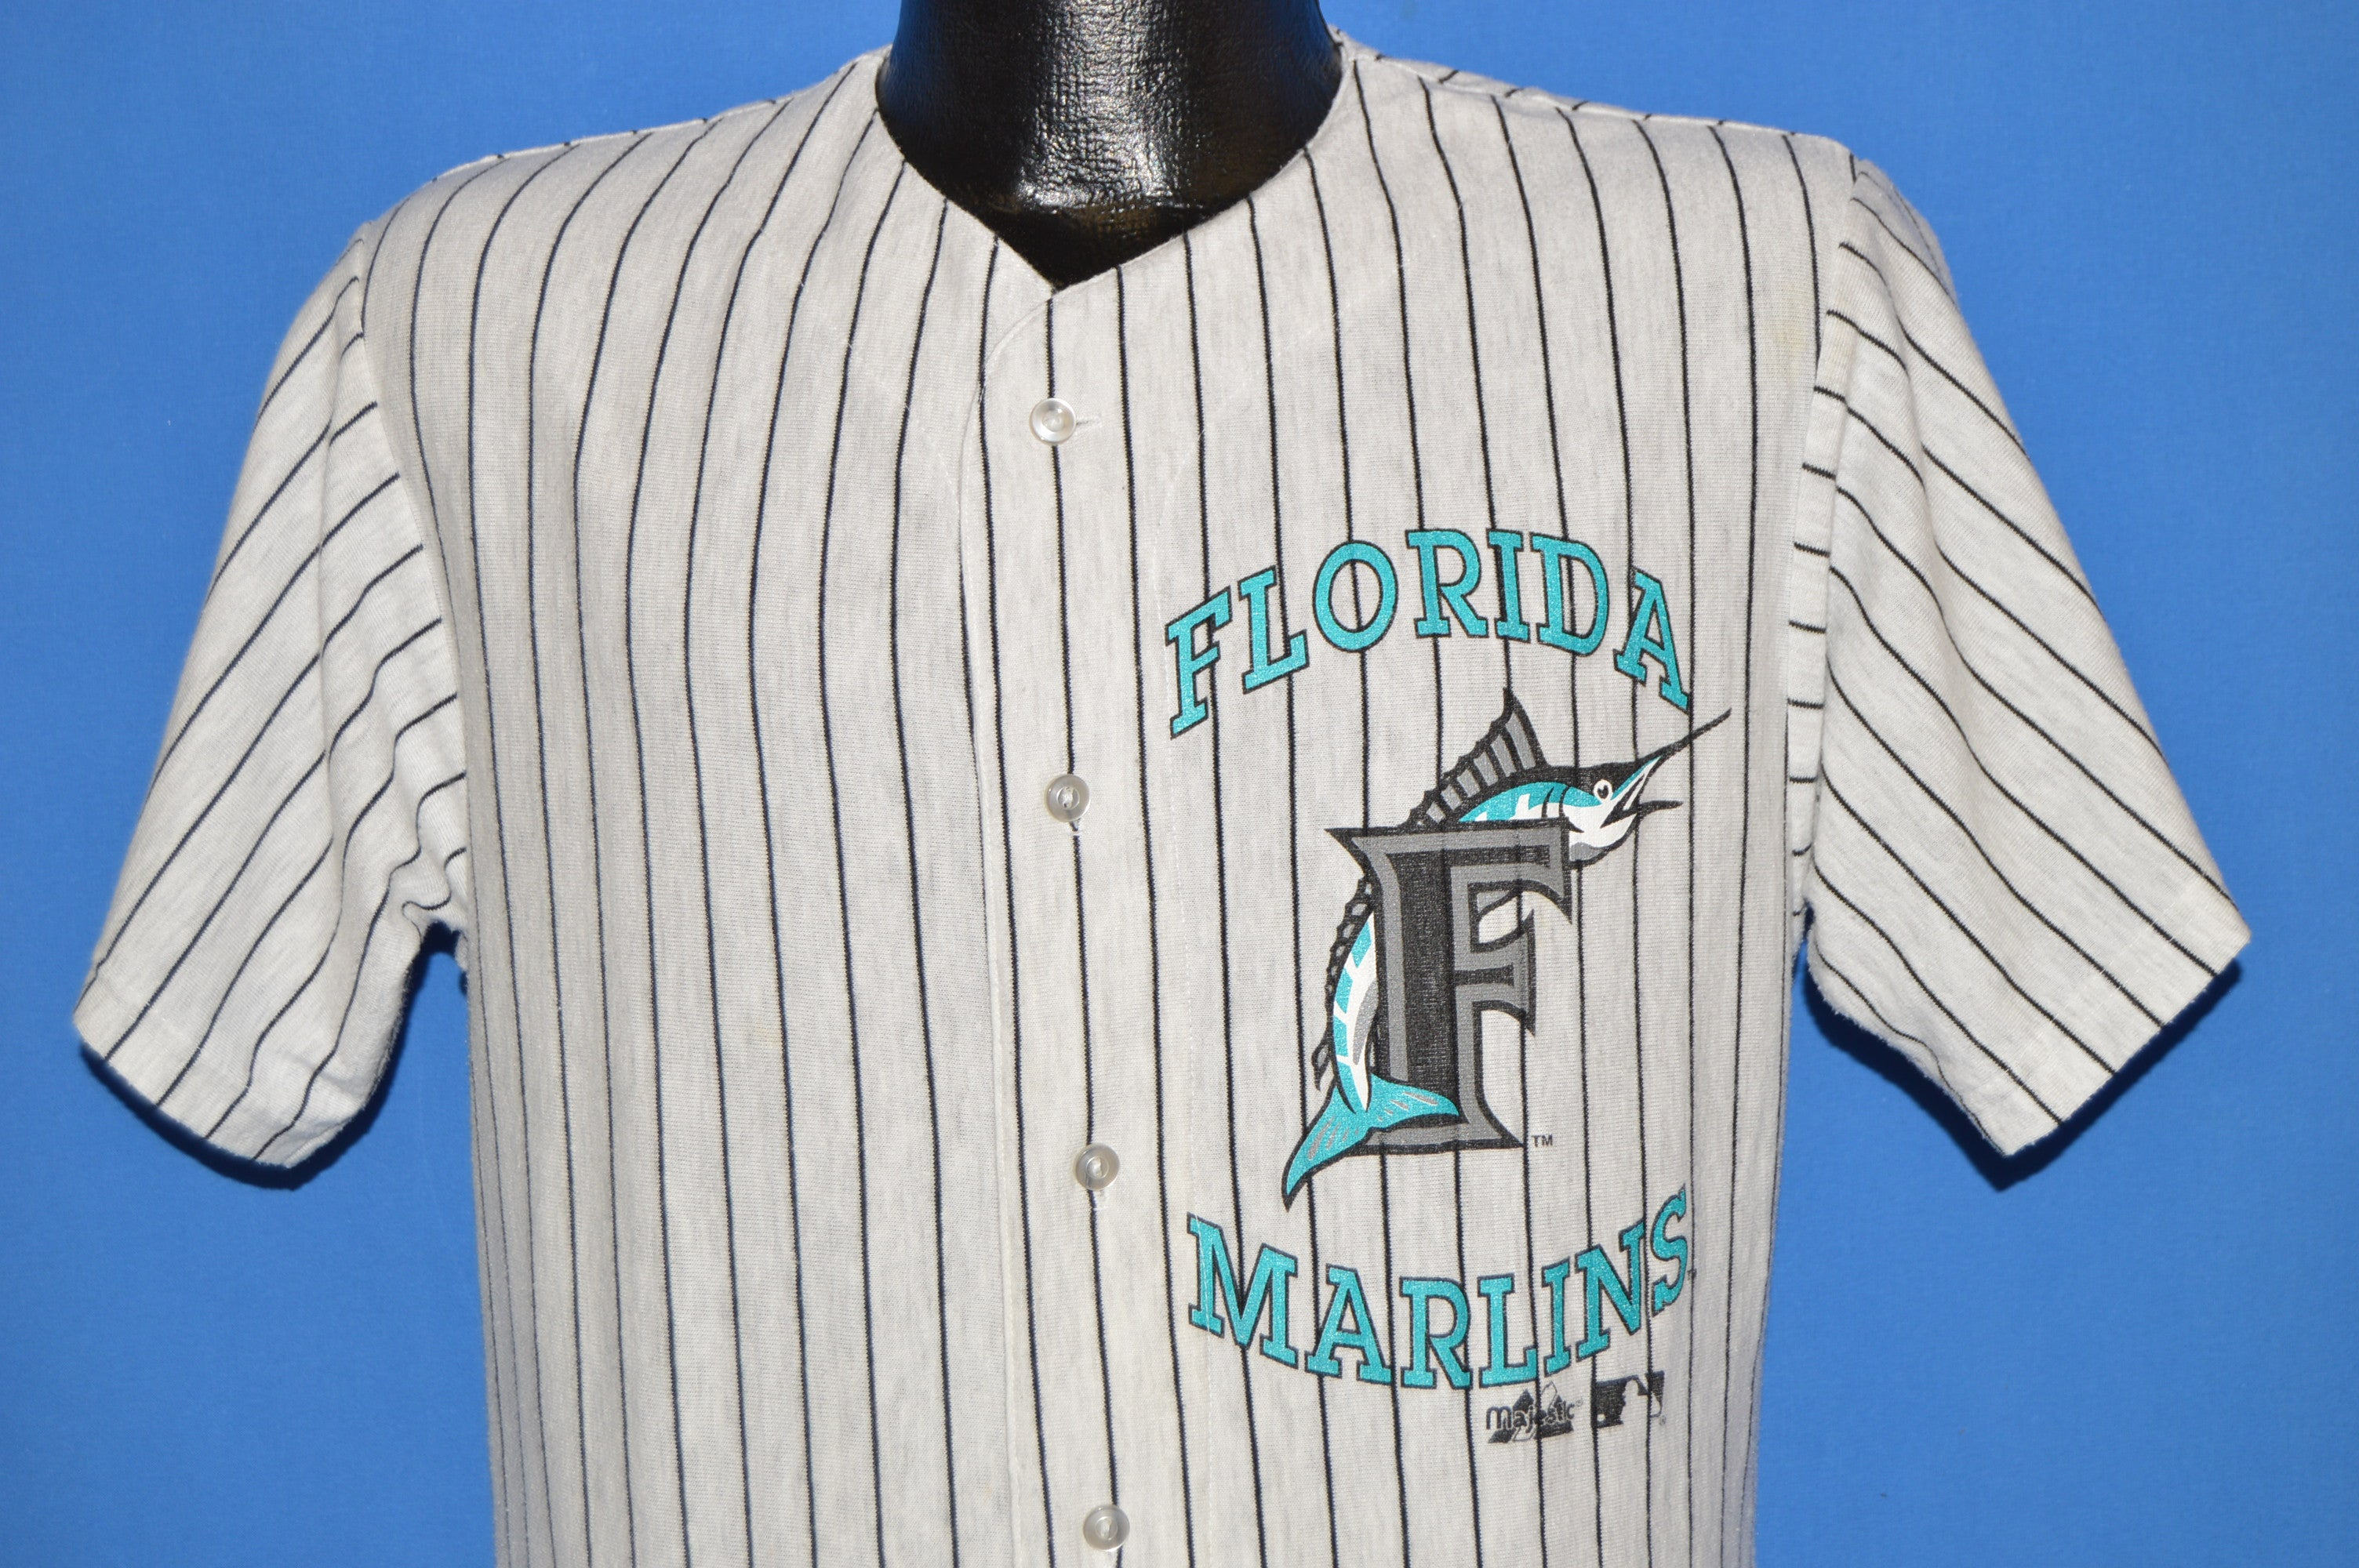 685b6787a 80s Florida Marlins Pinstripe Button Up t-shirt Large - The Captains ...